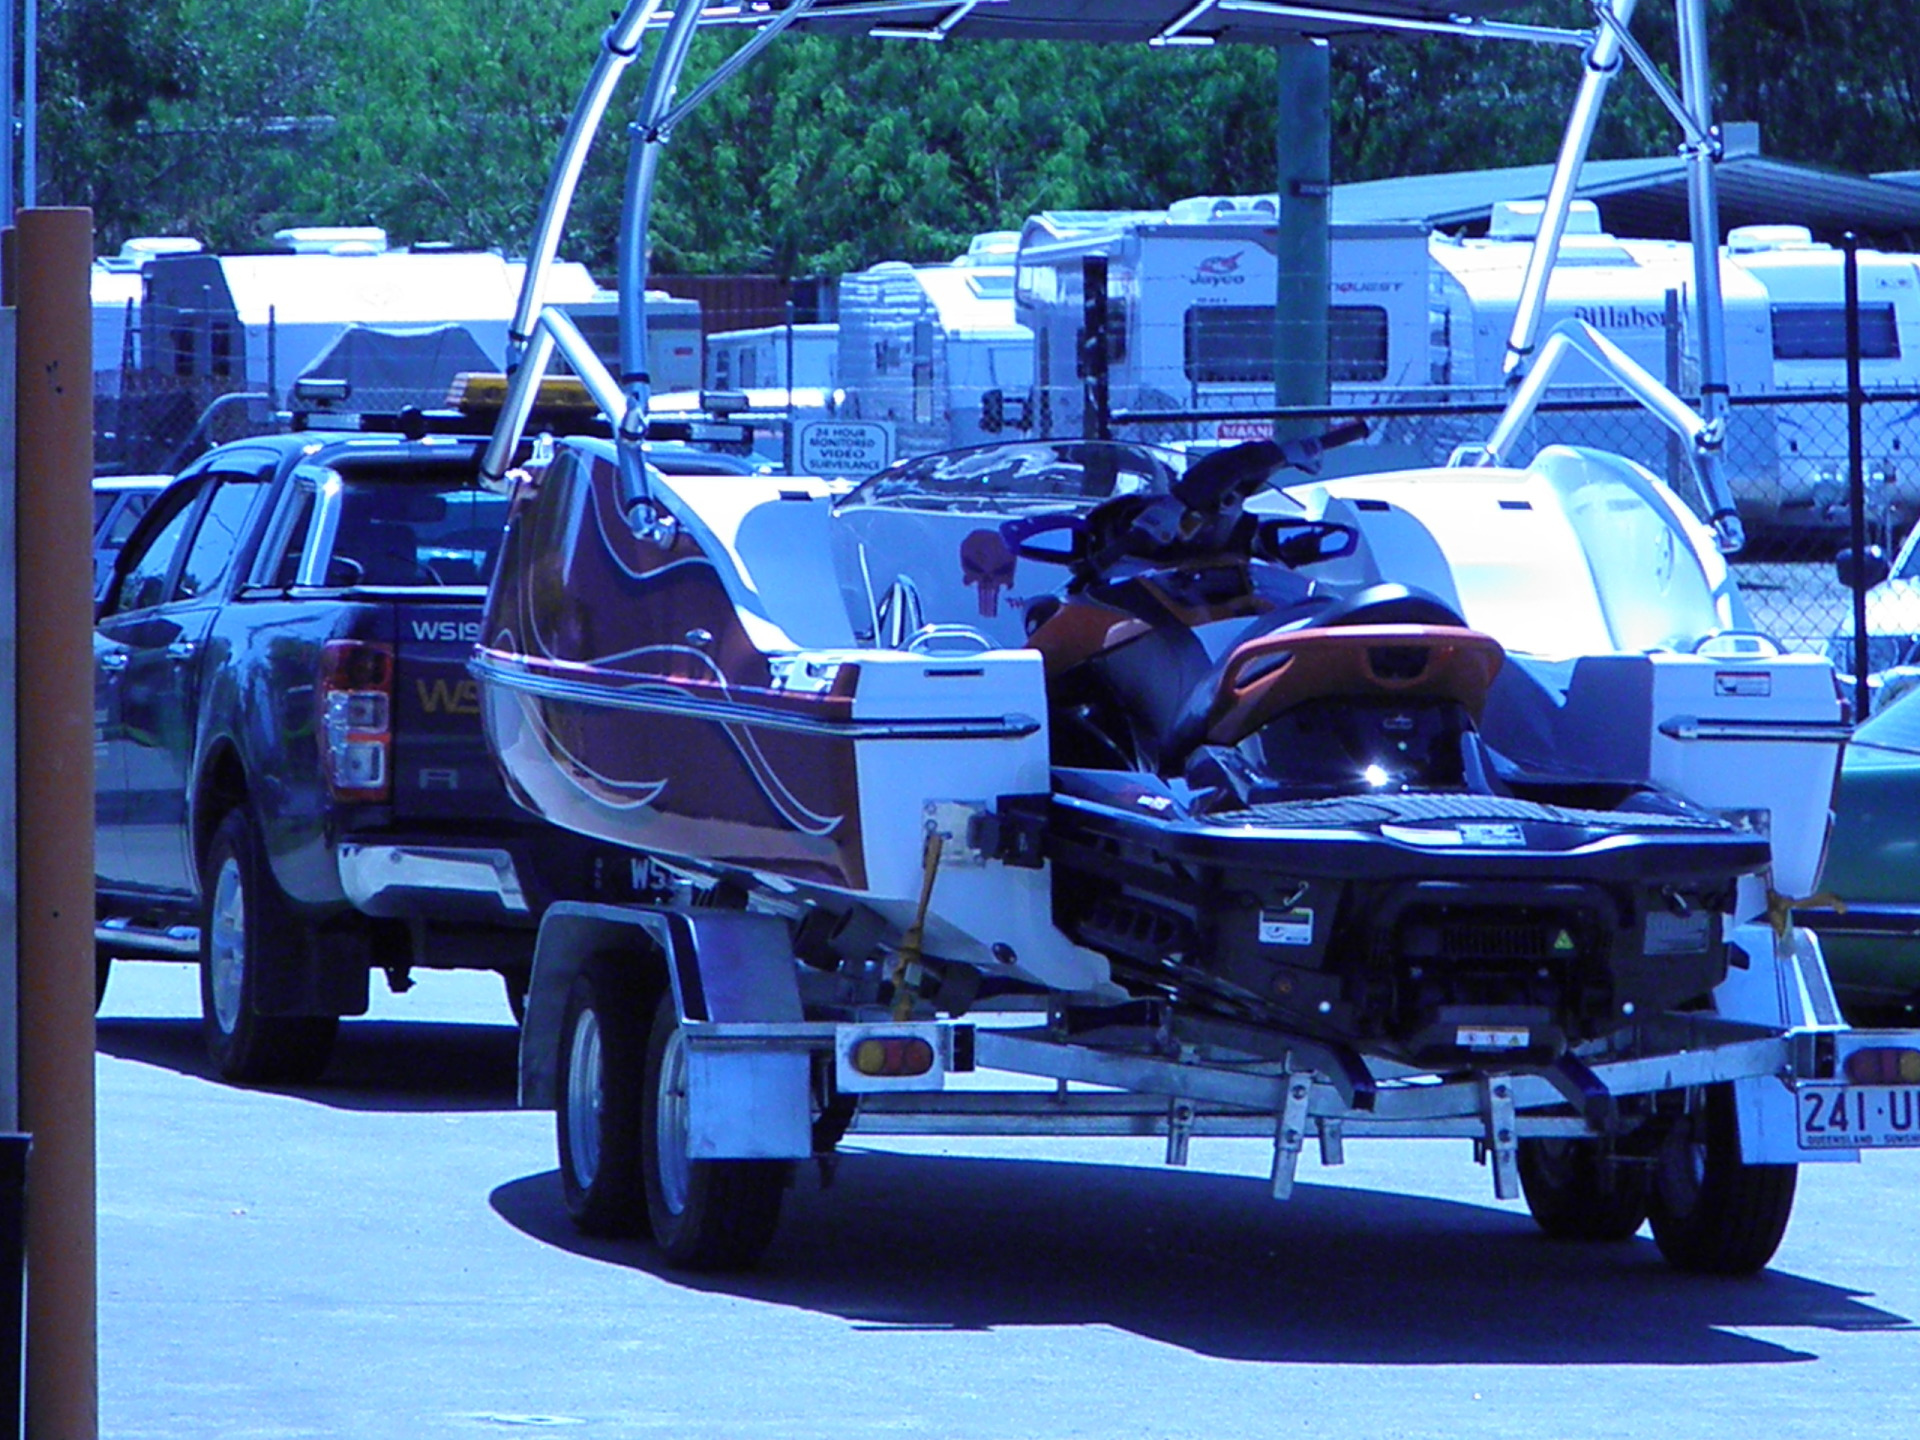 What Jetski`s fit into the 2Ezy Jet Ski Boat?